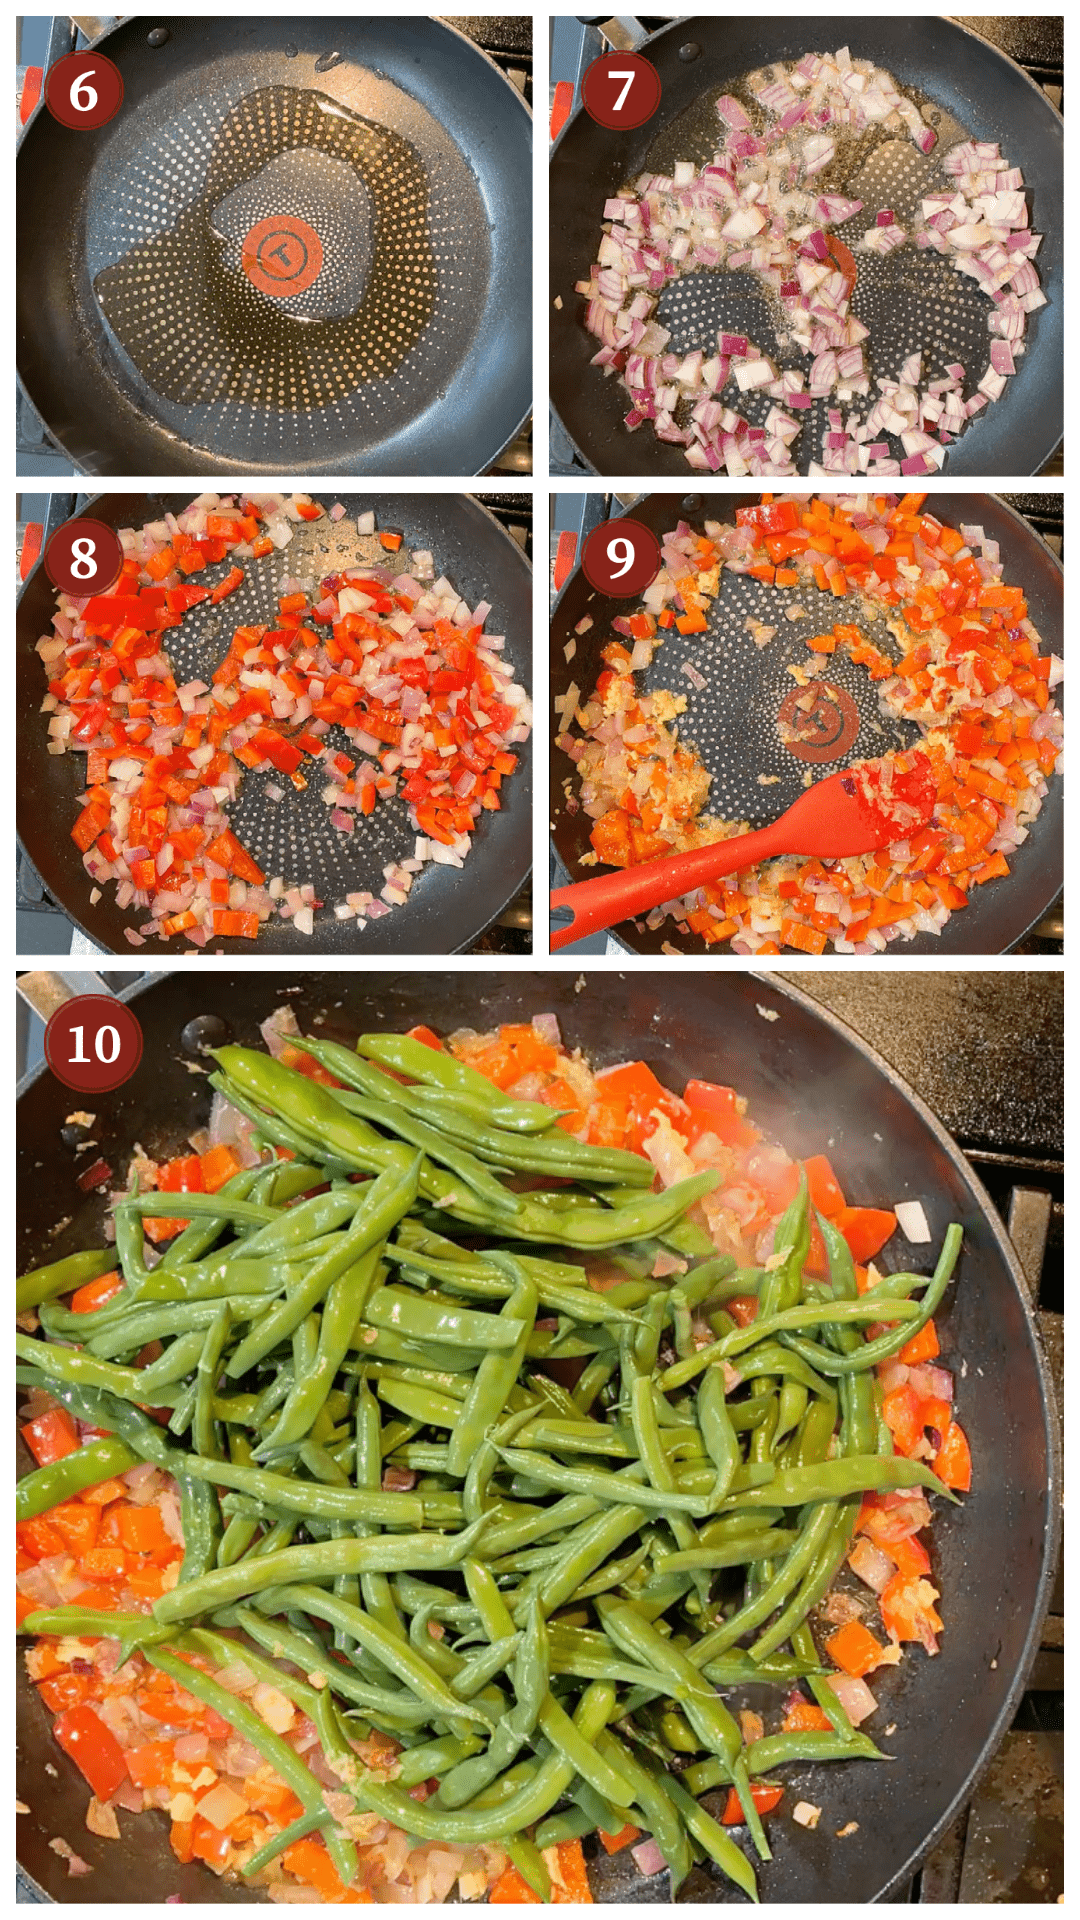 A collage of images showing how to saute ginger garlic green beans, steps 6 - 10.